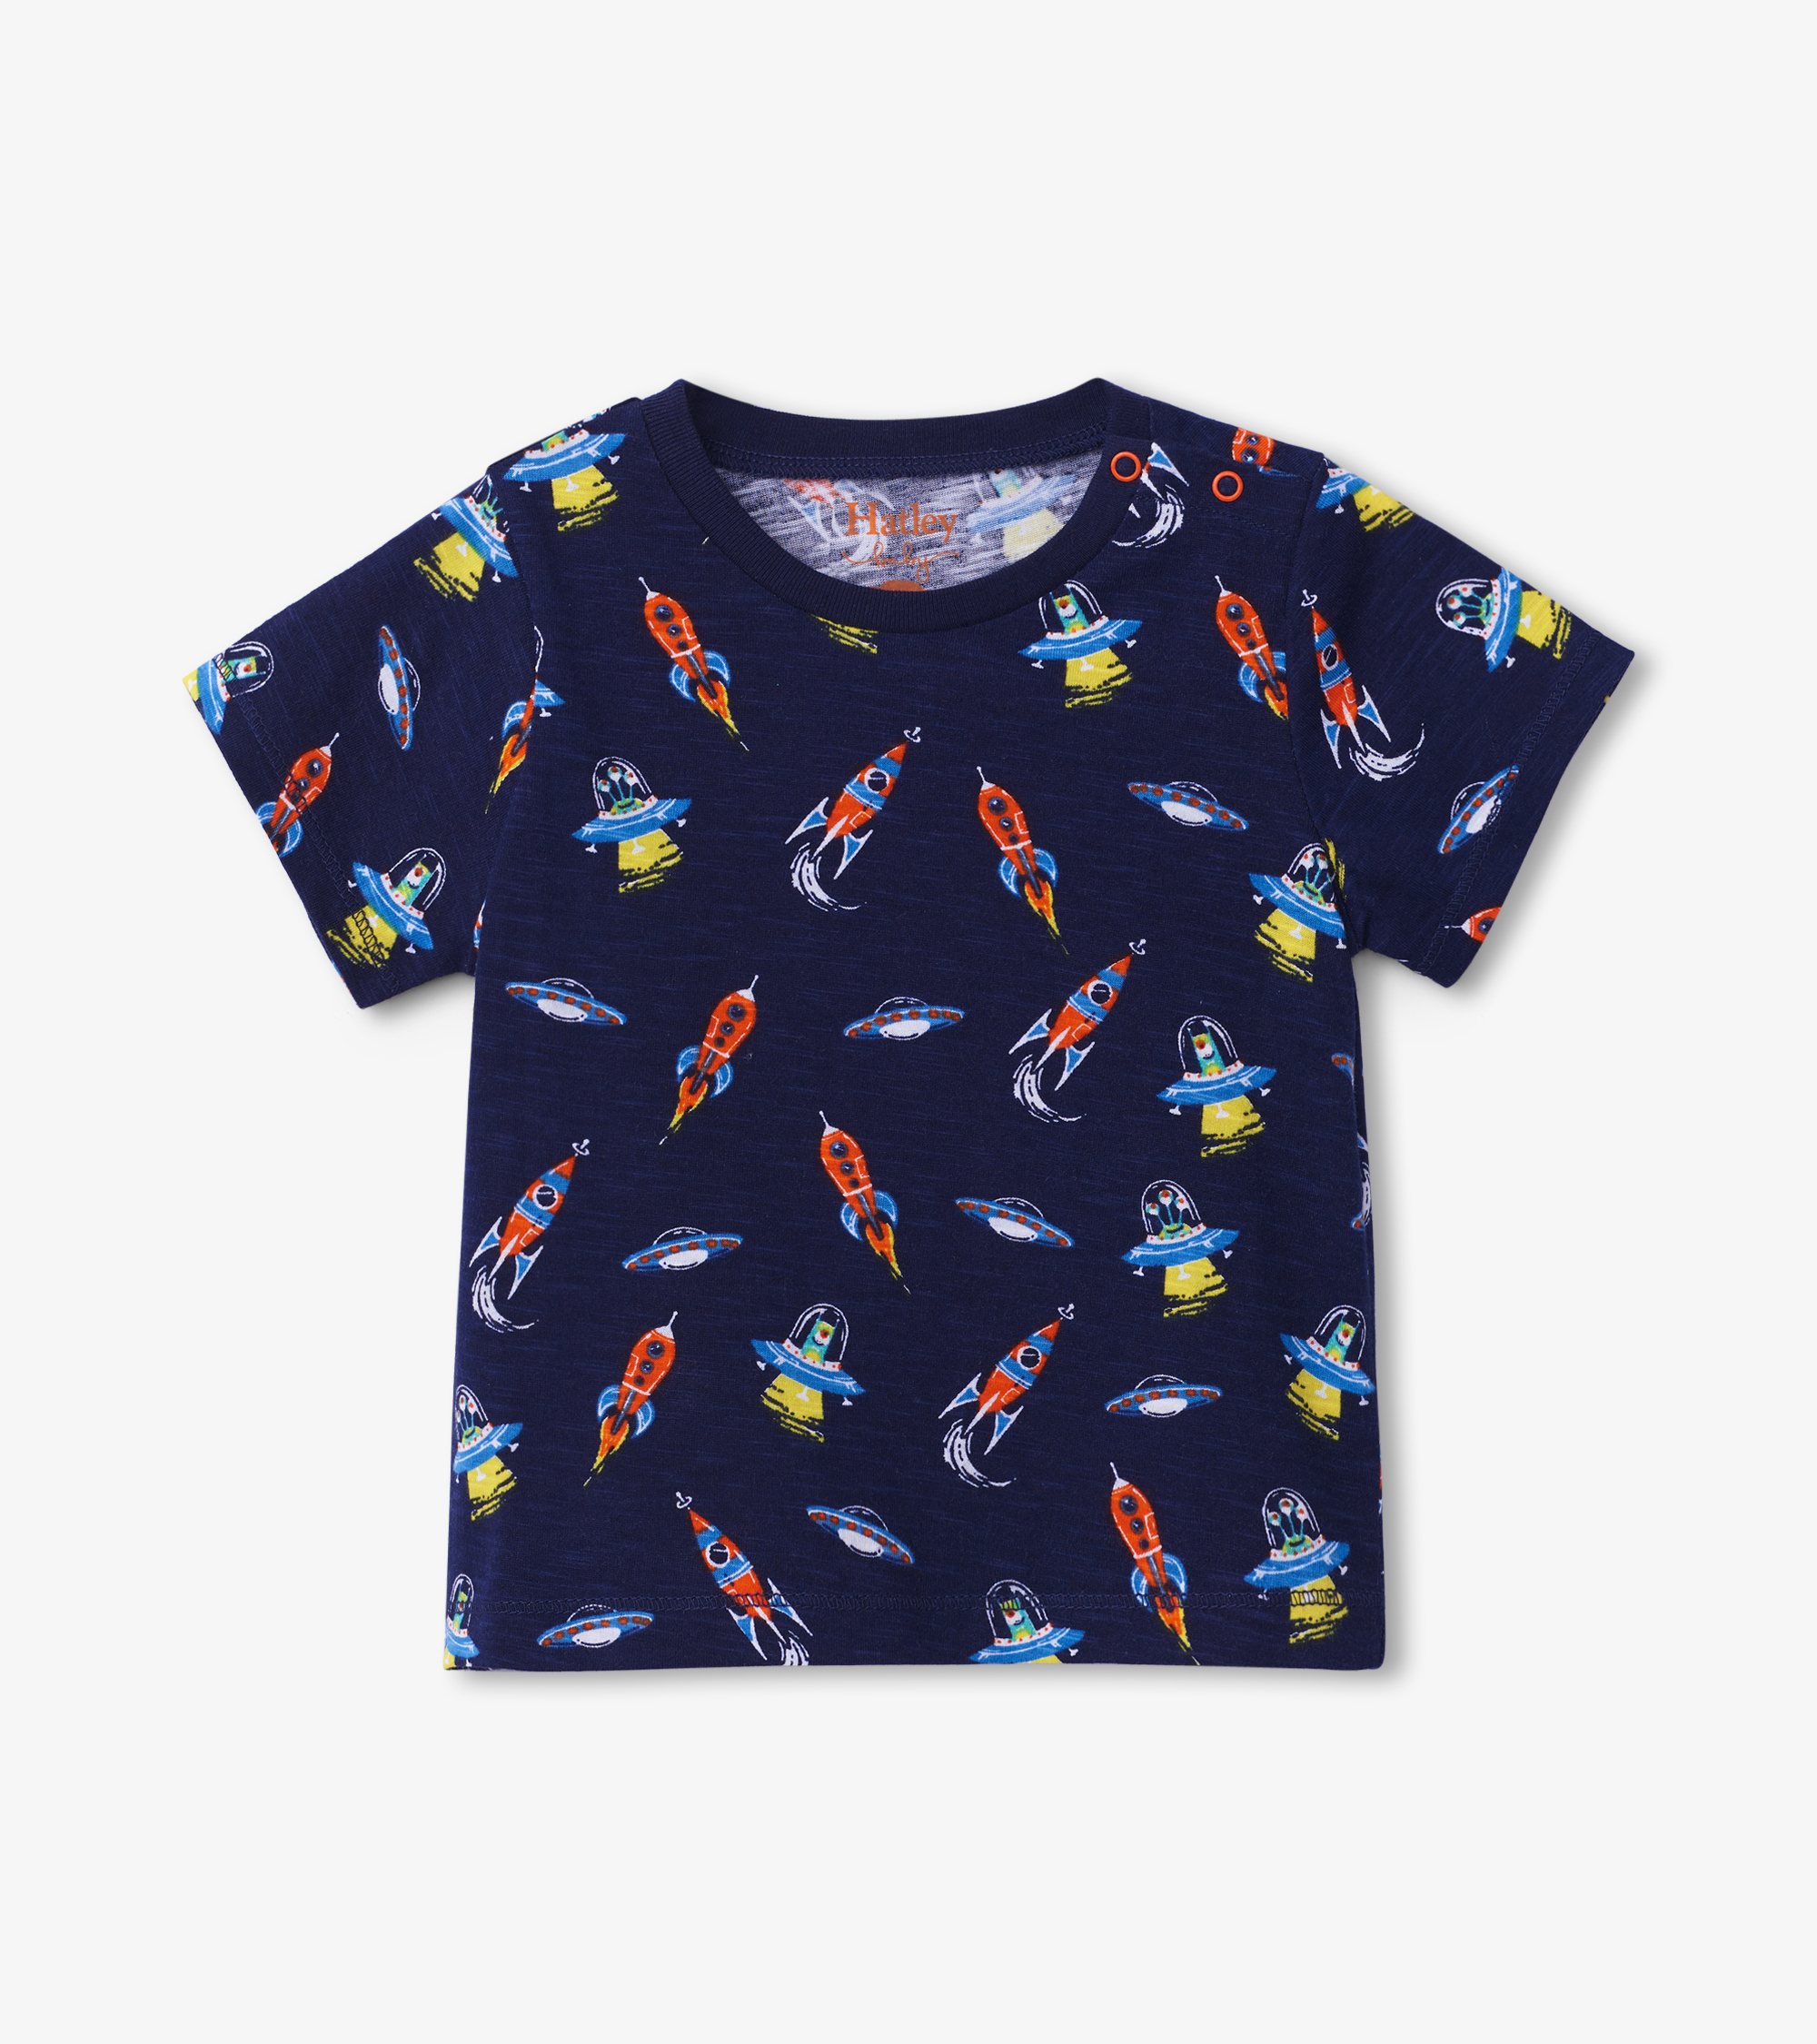 Hatley Retro Rockets Baby Graphic Tee